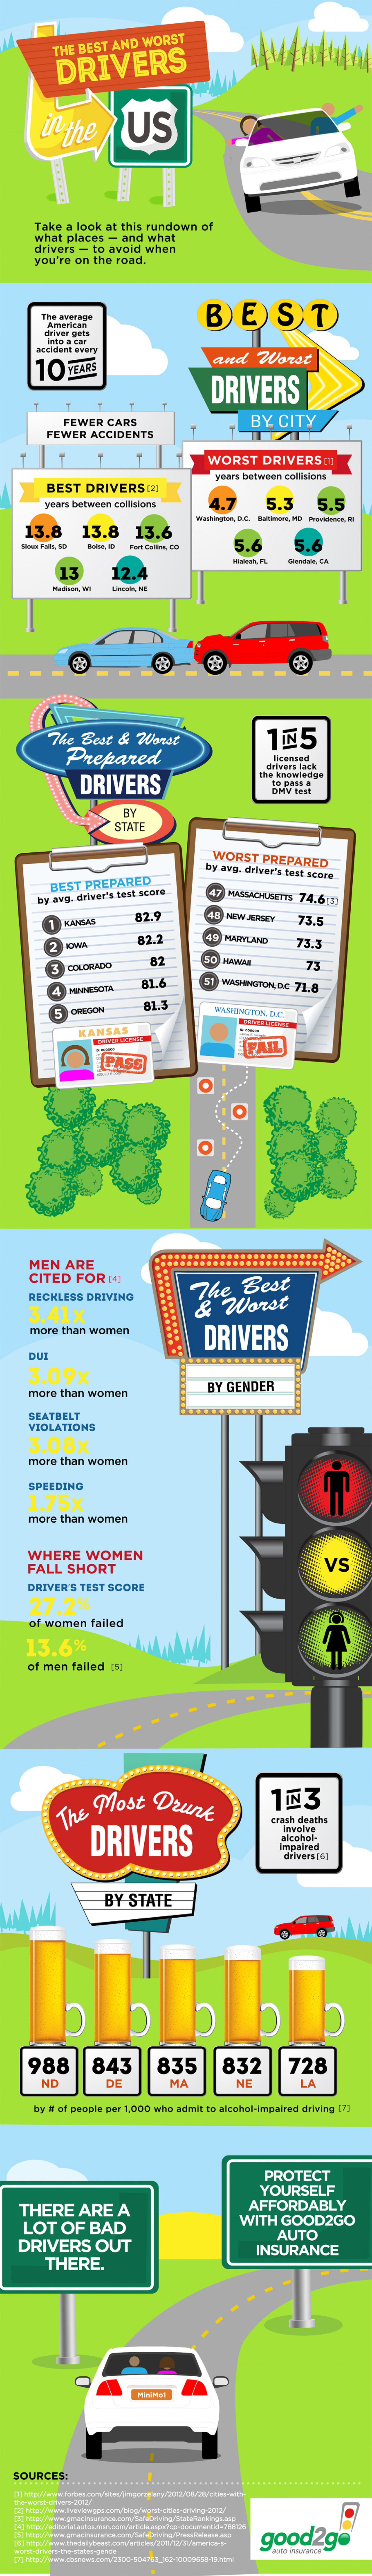 The Best and Worst Drivers in the US Infographic